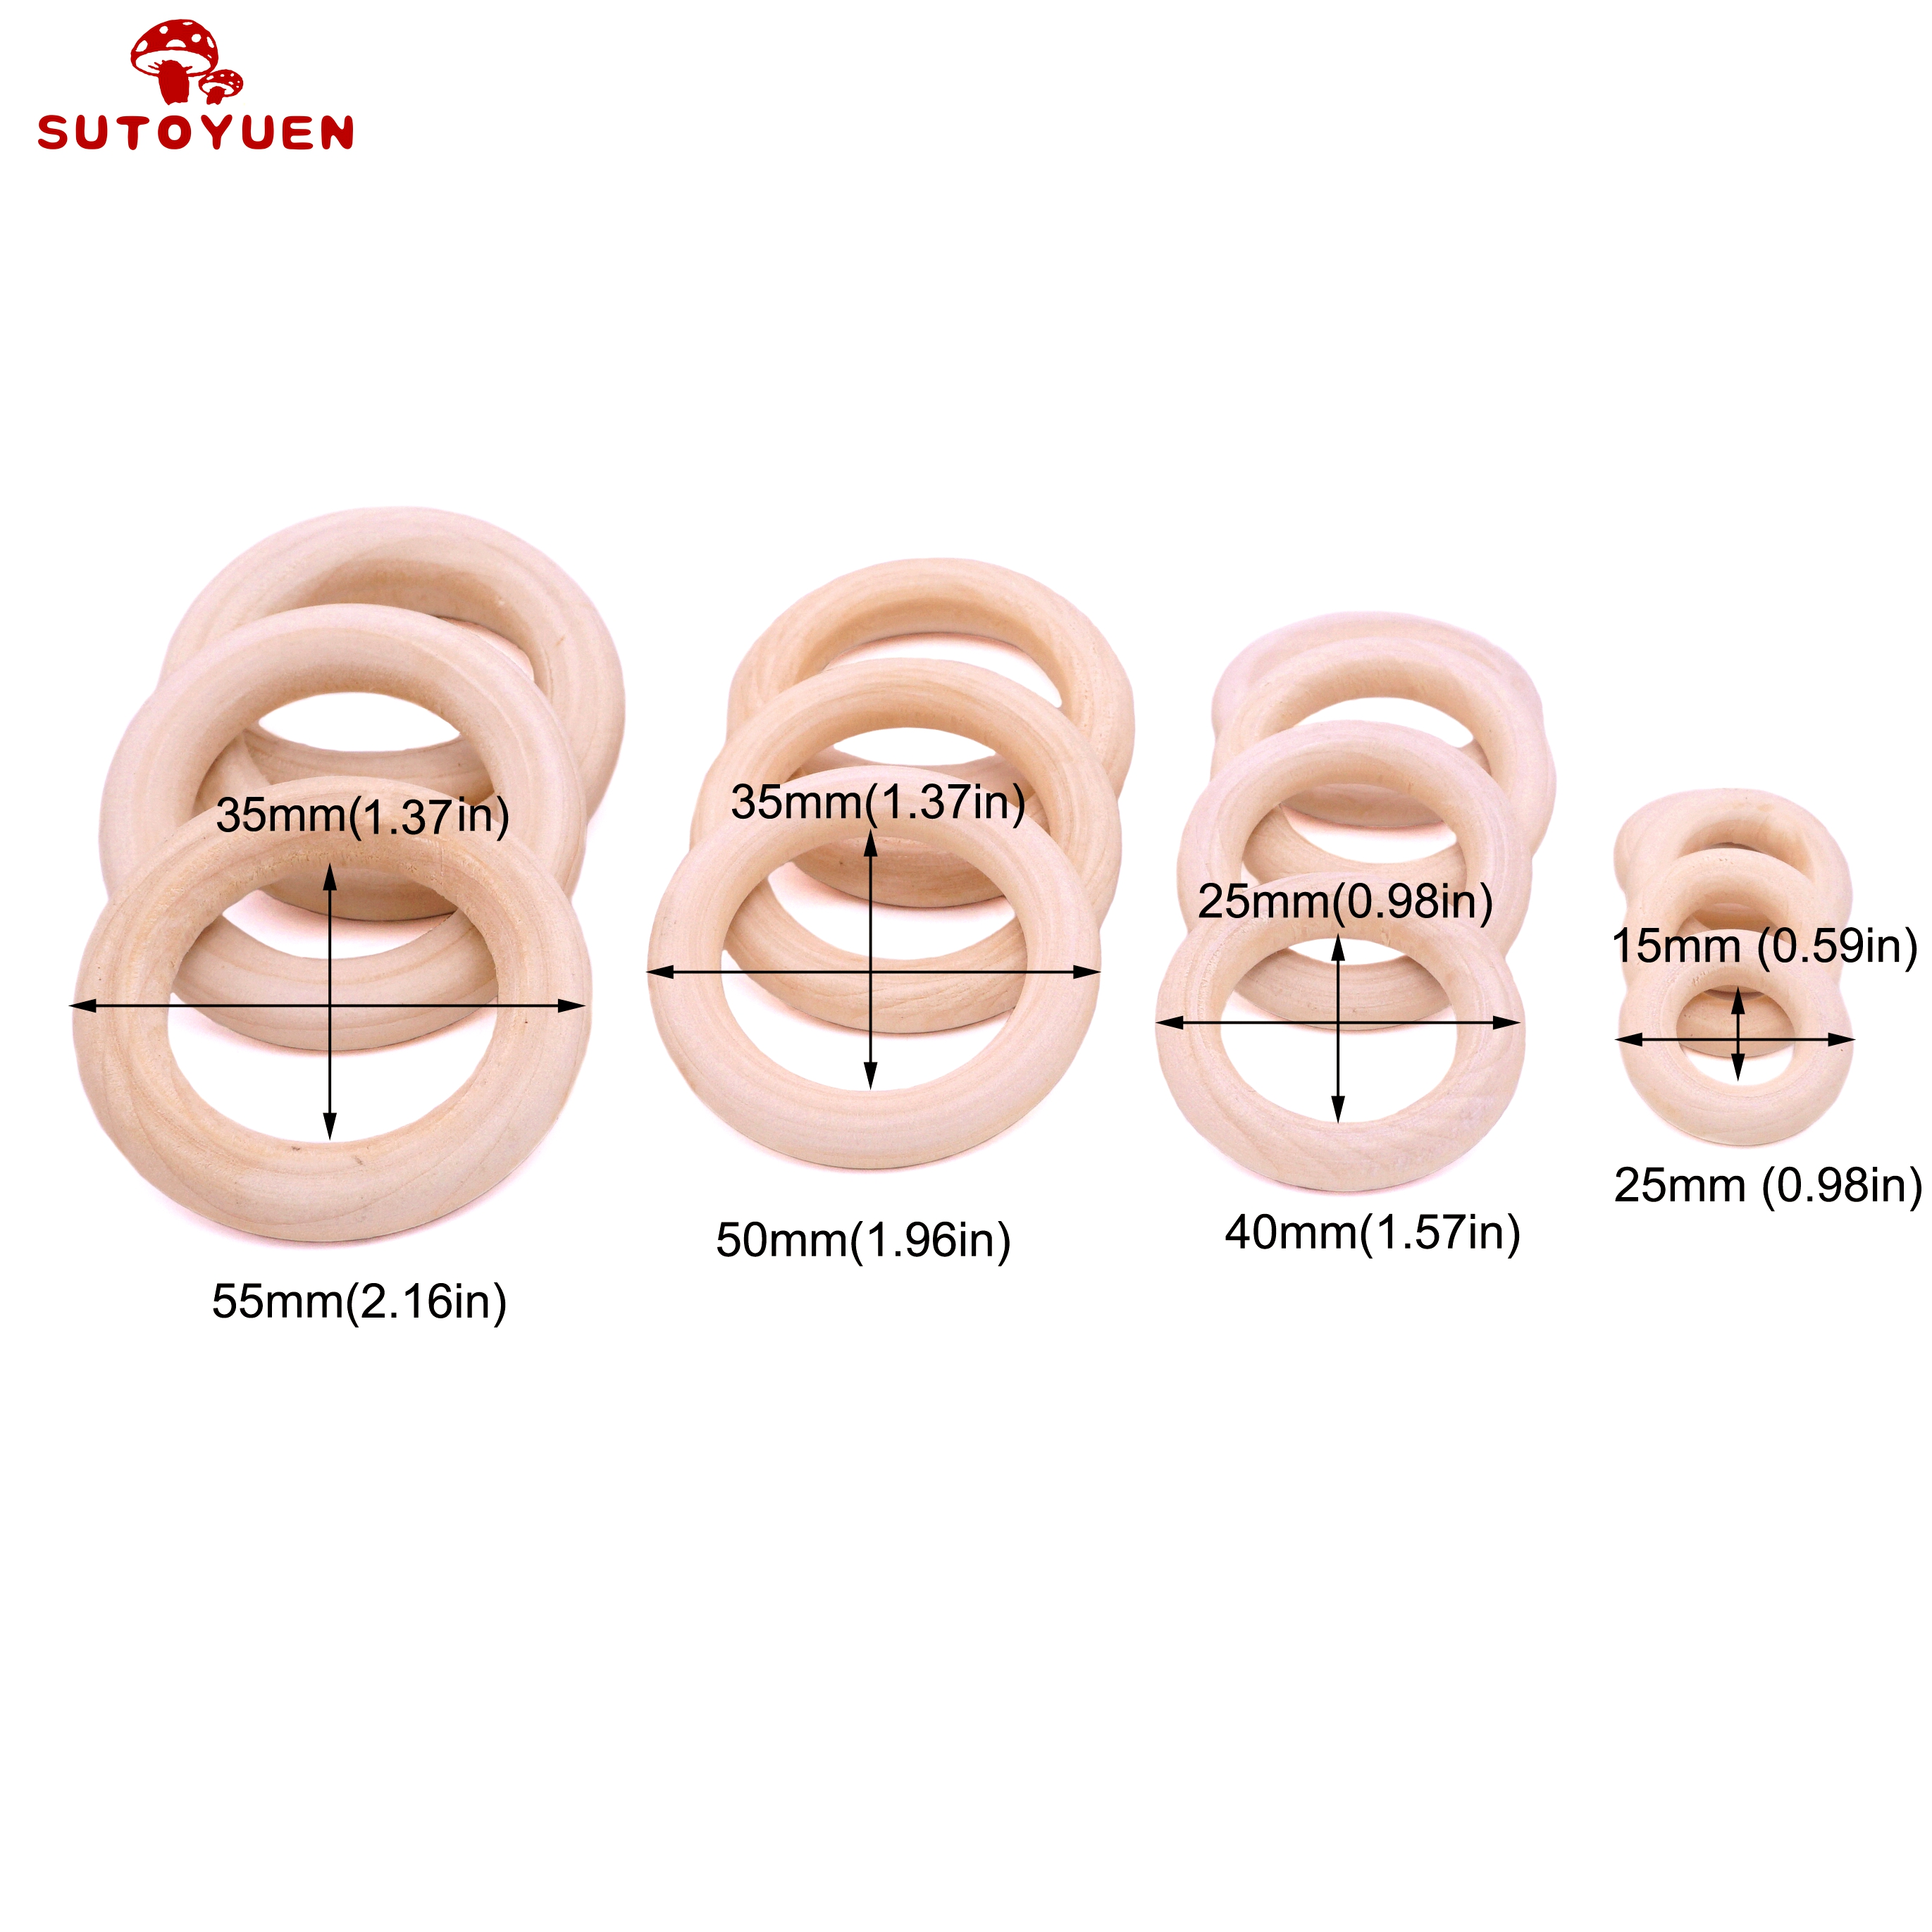 Image 5 - Sutoyuen Baby Teether 100pcs Wooden Round Wood Ring 40 70mm DIY Bracelet Crafts Gift Wood Teether Natural Teething AccessoryBaby Teethers   -